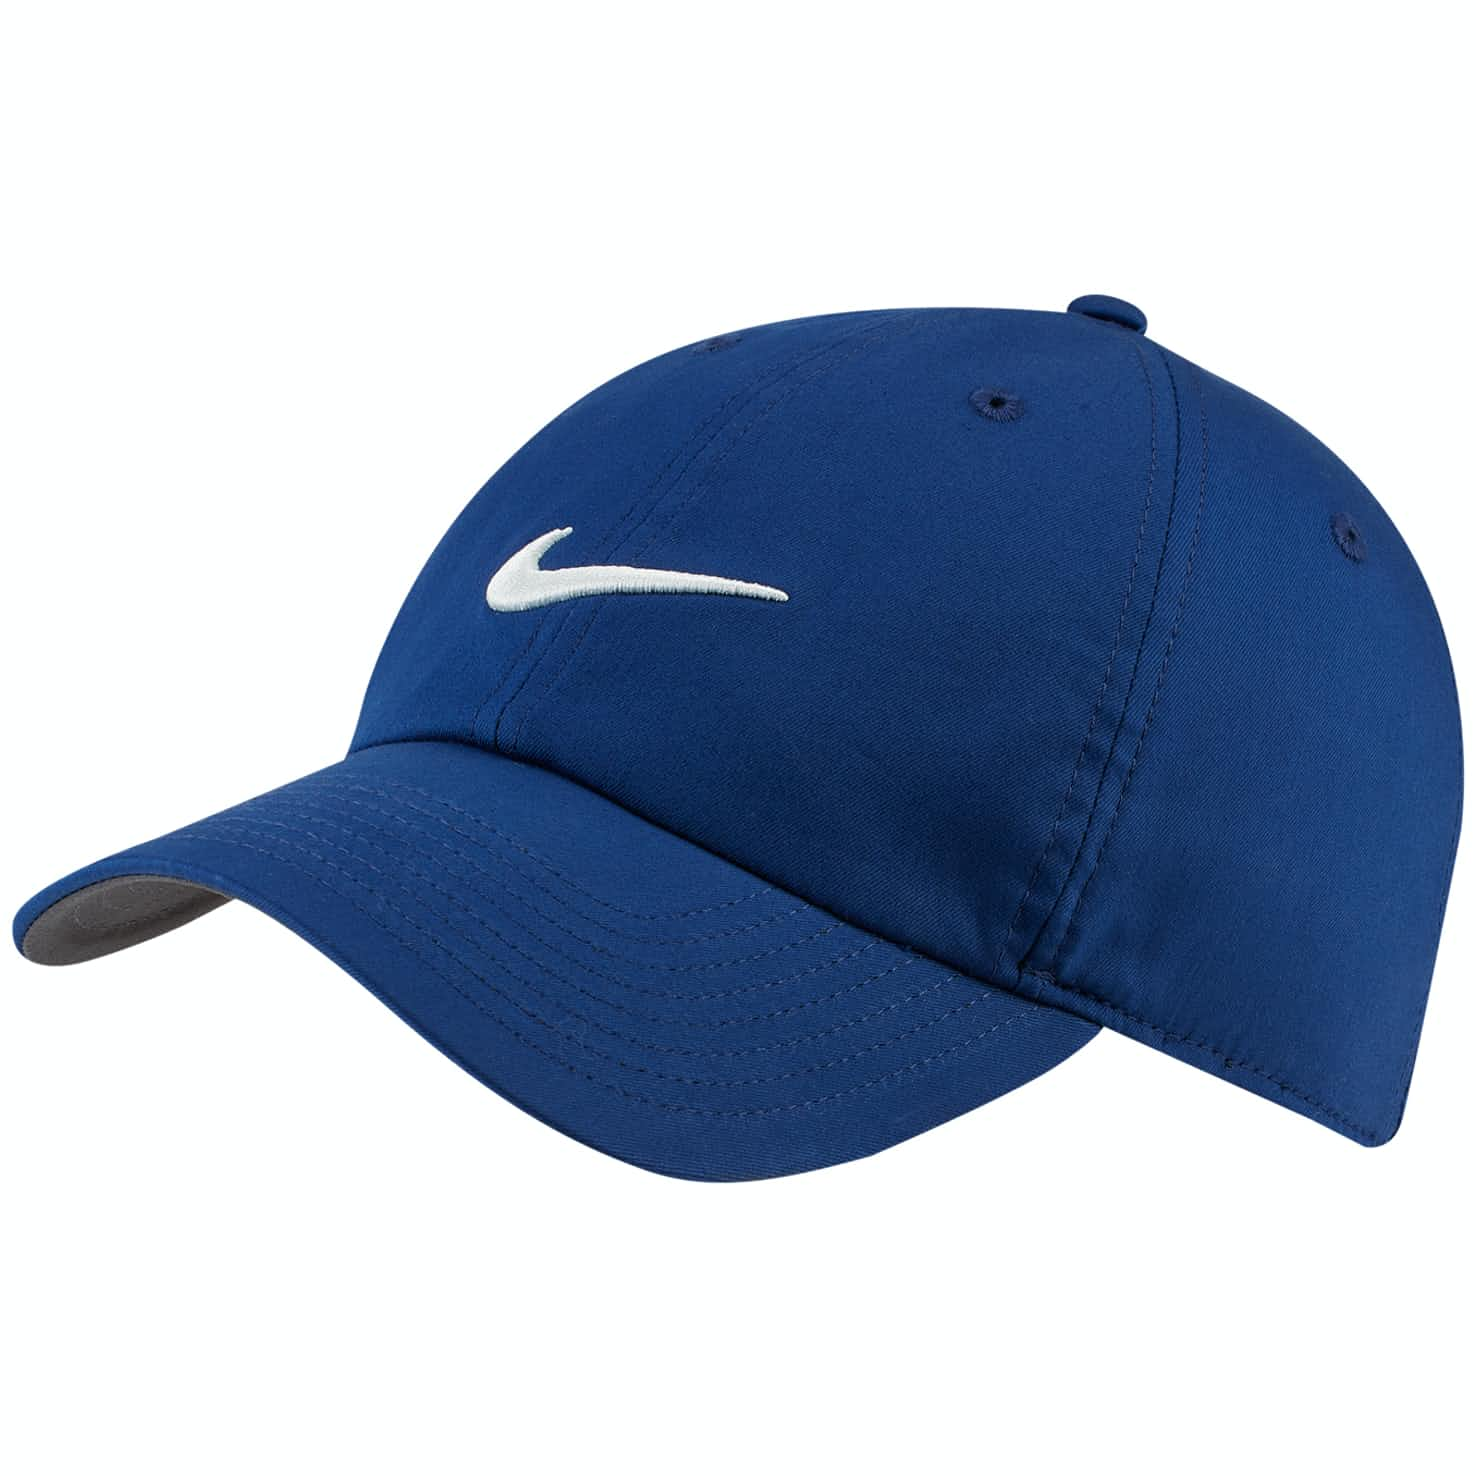 Heritage 86 Player Cap Blue Void/Anthracite - AW19